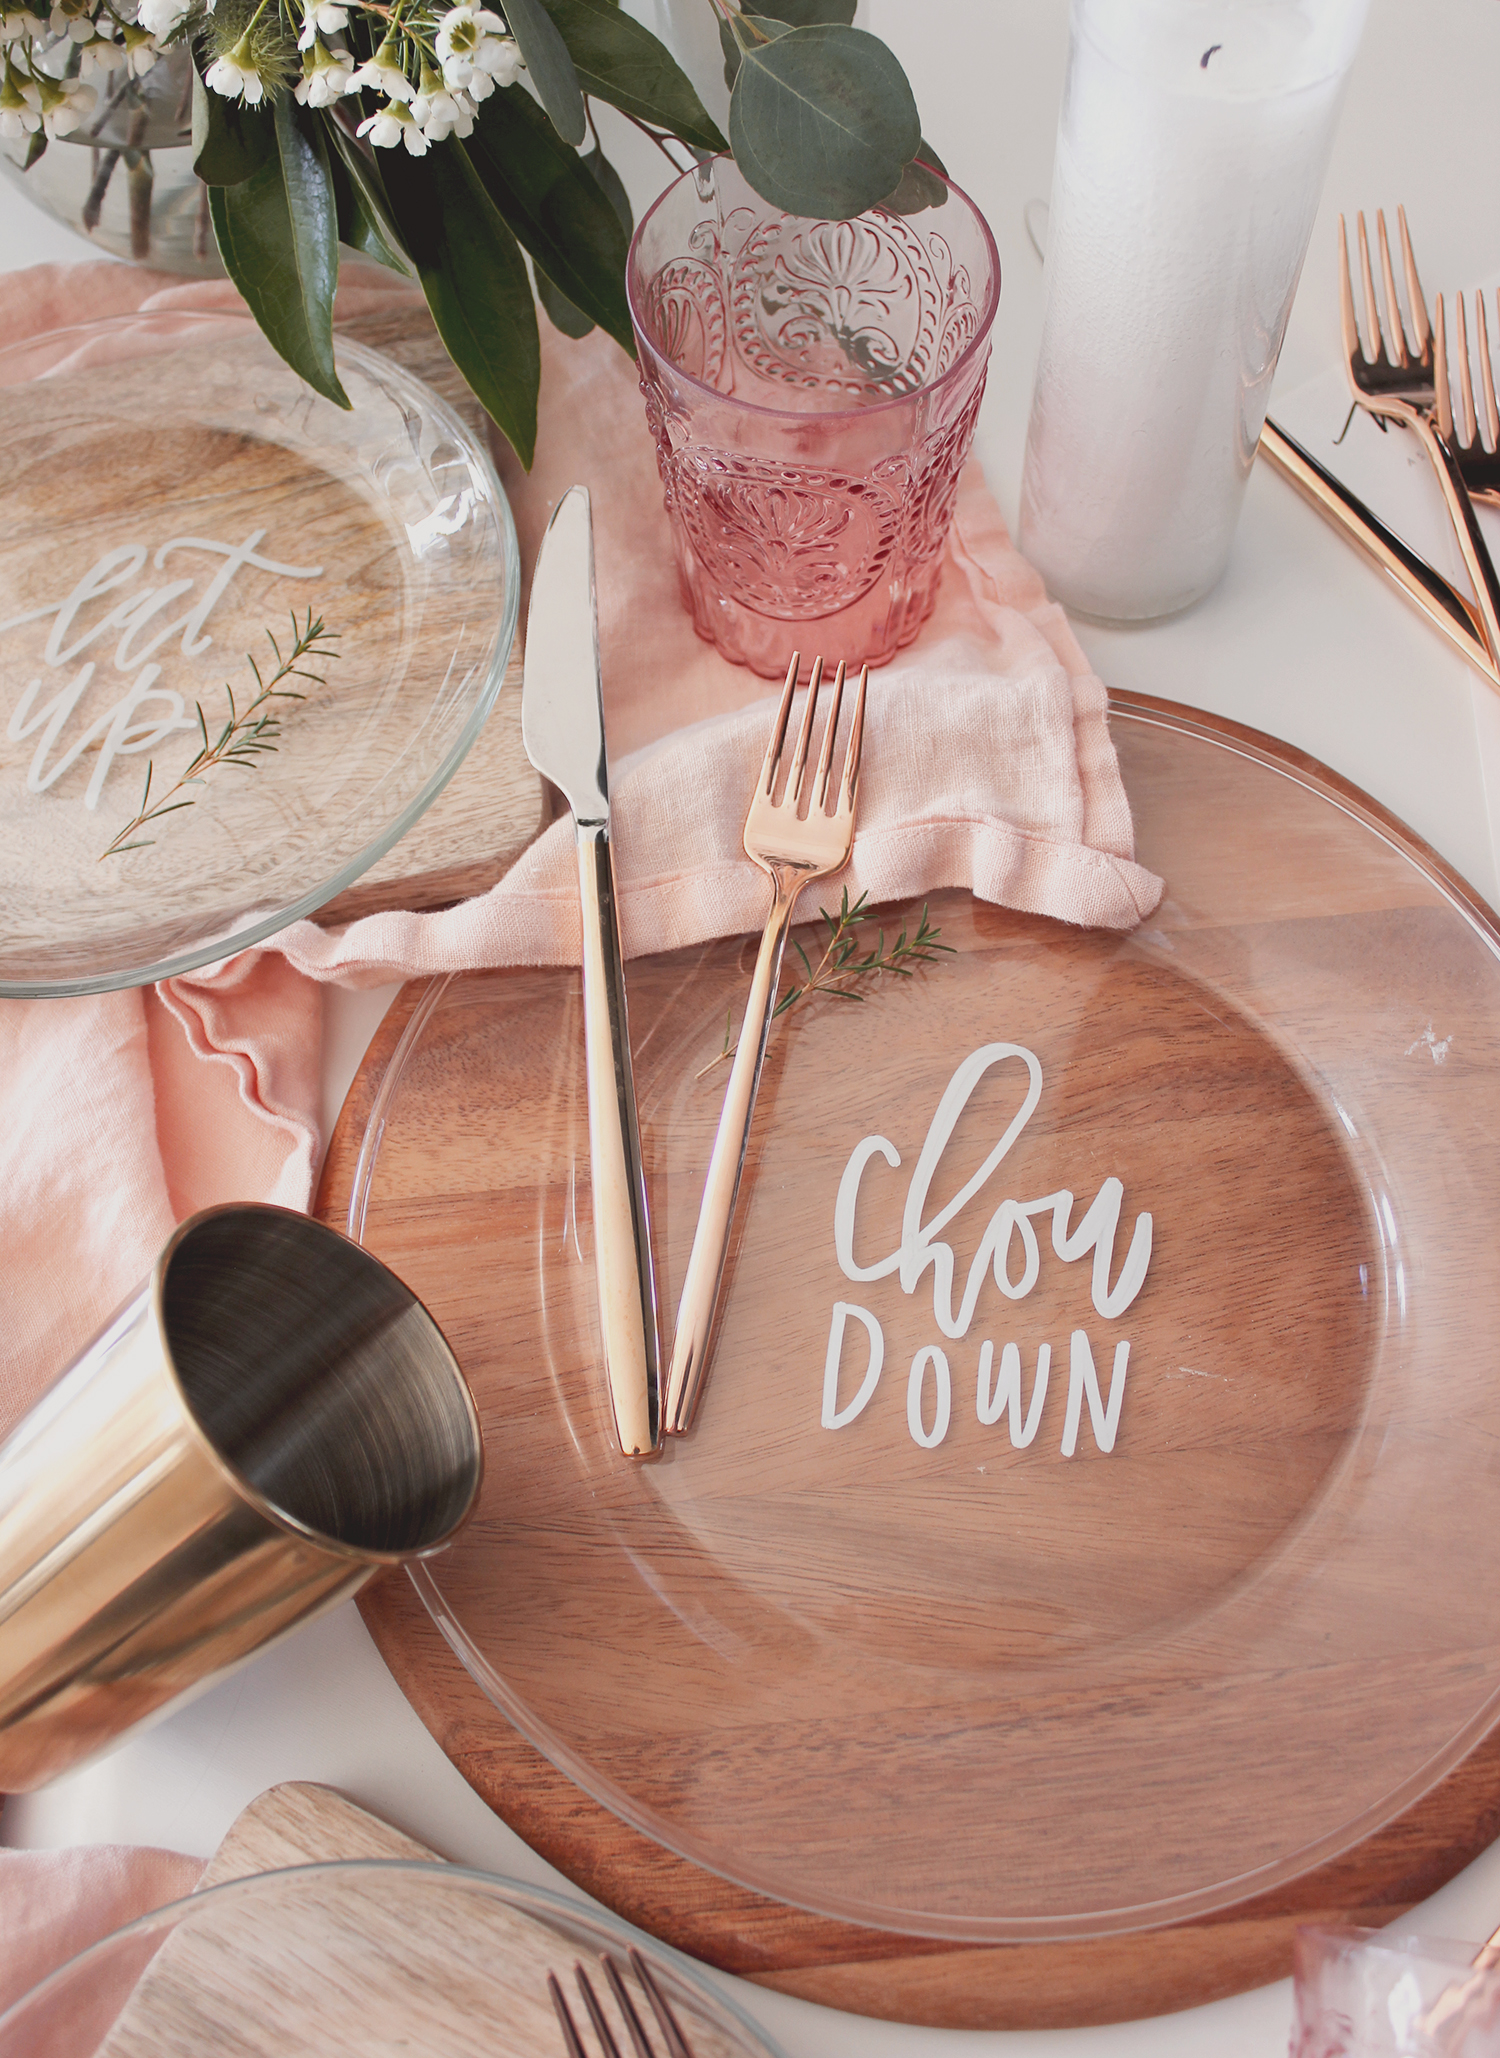 Calligraphy embellished plates for a dinner party | A Fabulous Fete